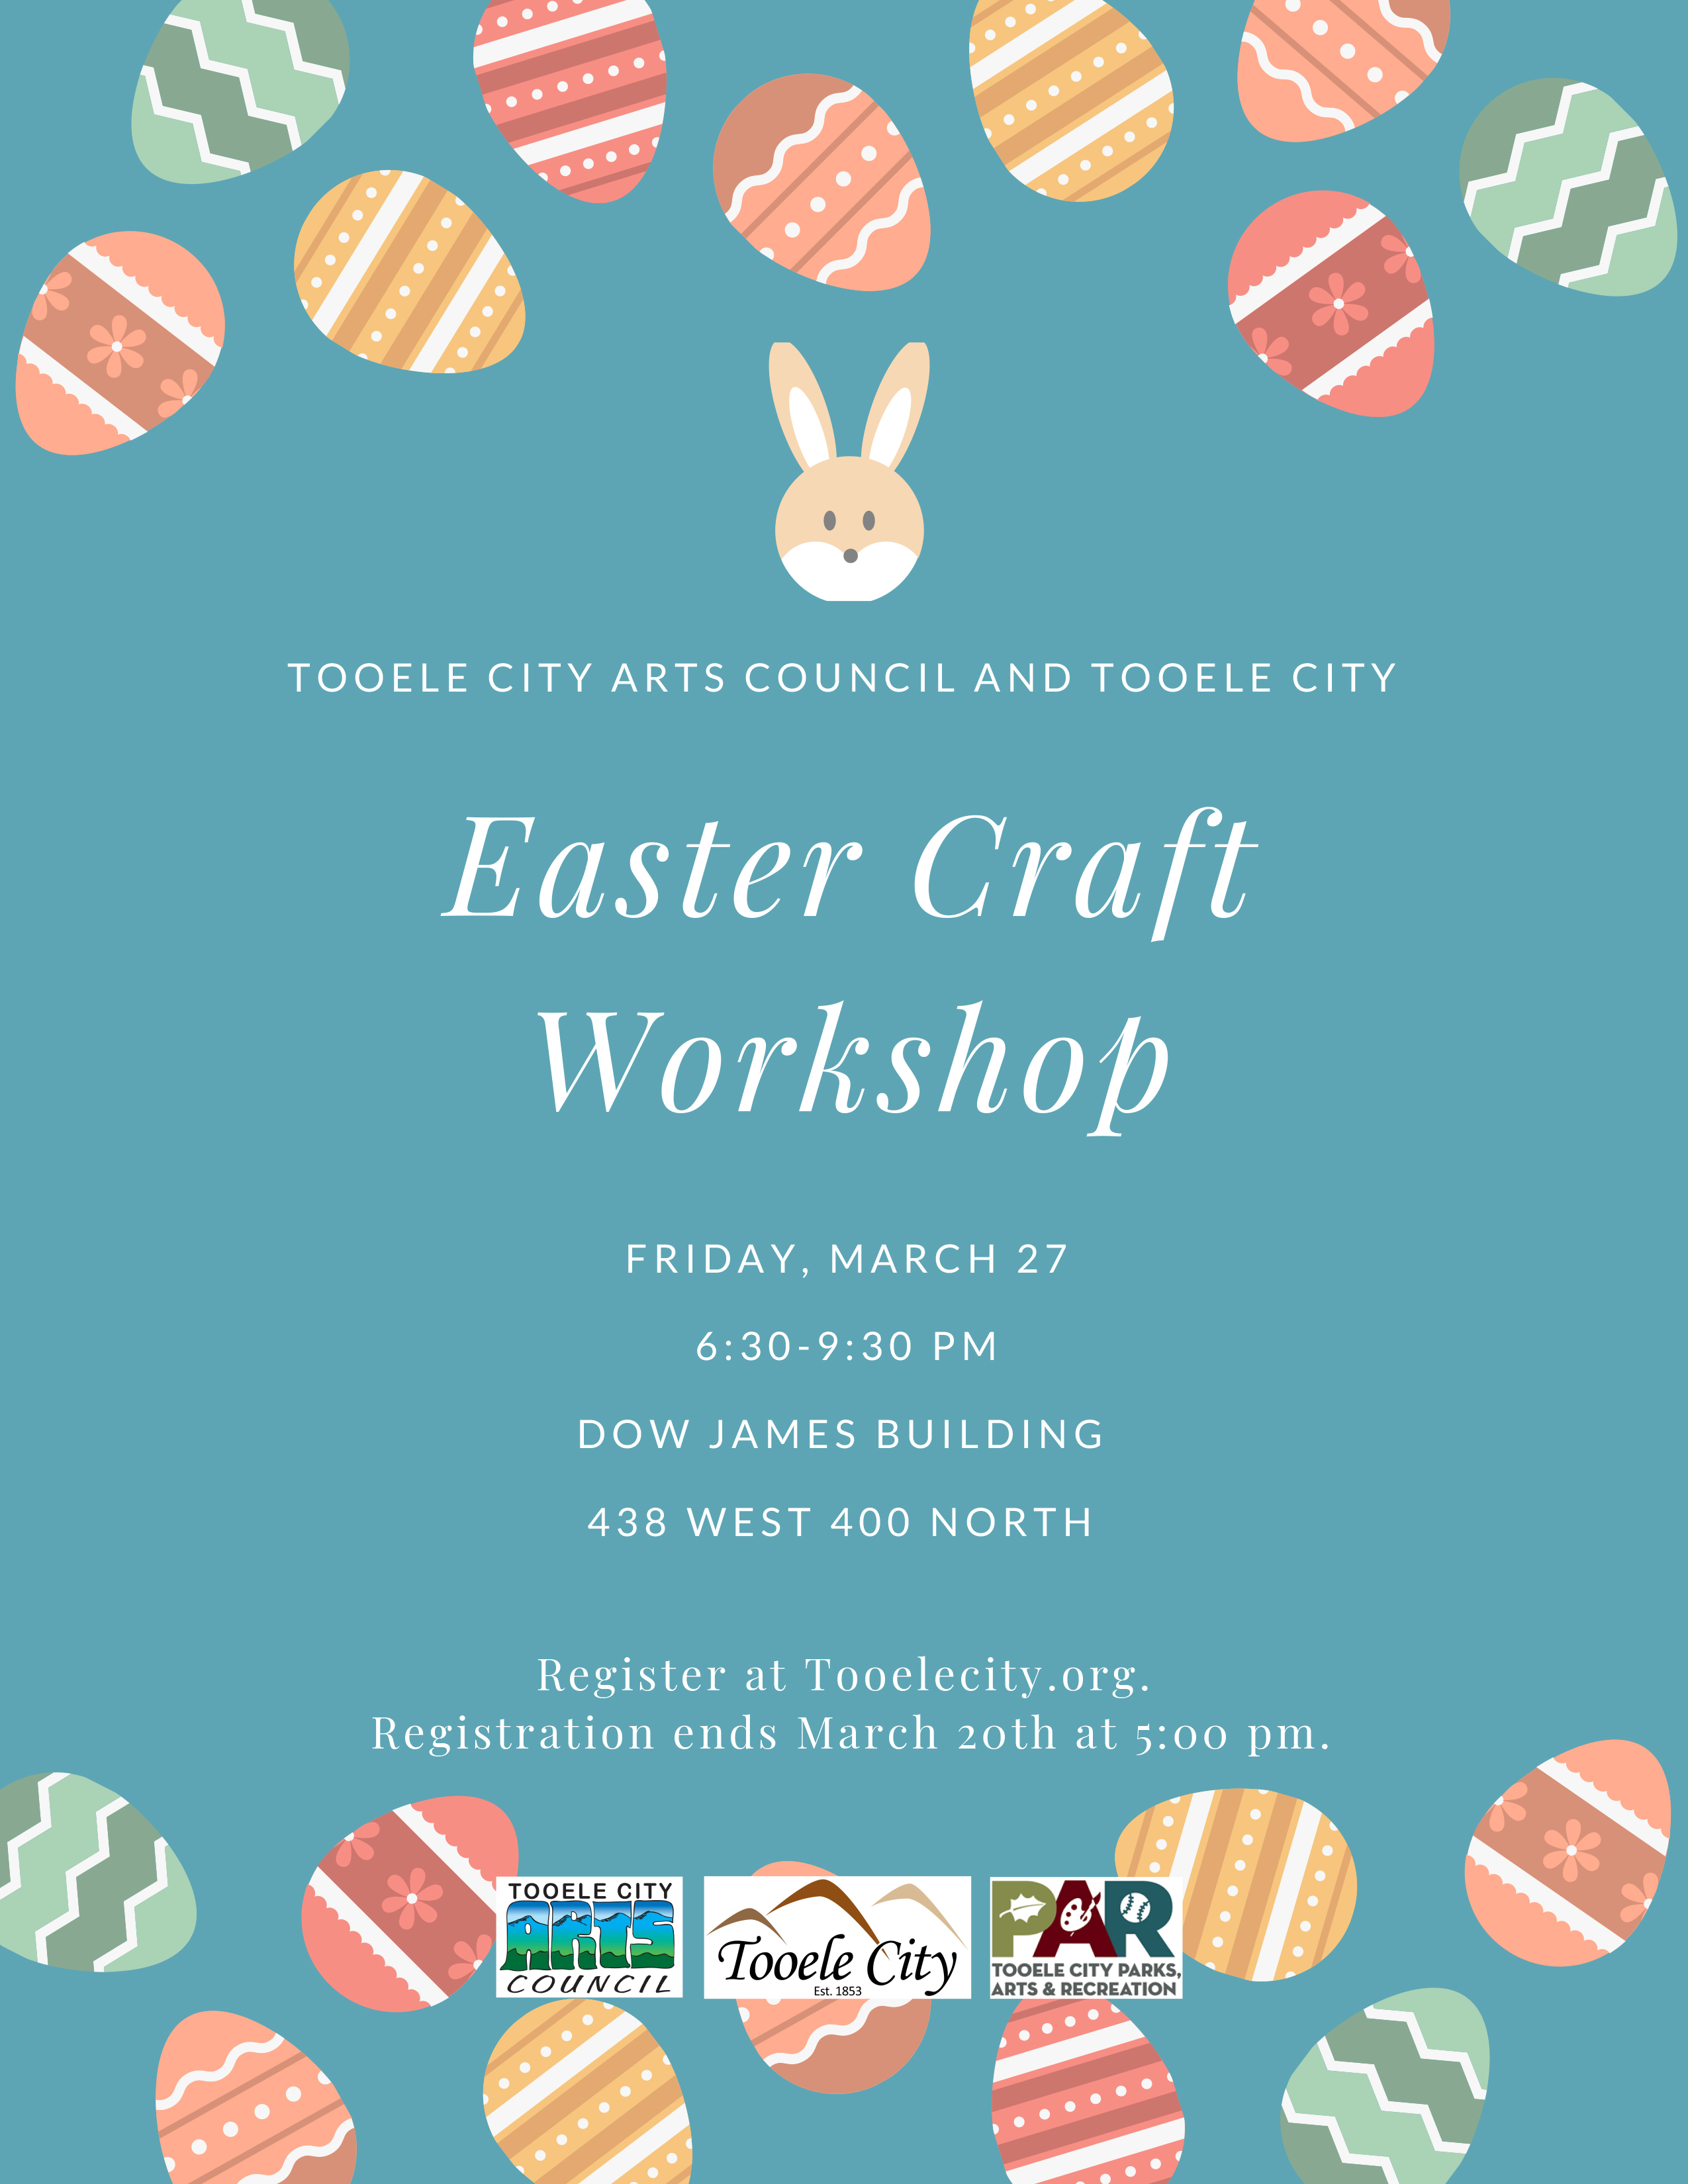 Easter Craft Workshop - CANCELLED @ Dow James Building | Tooele | Utah | United States